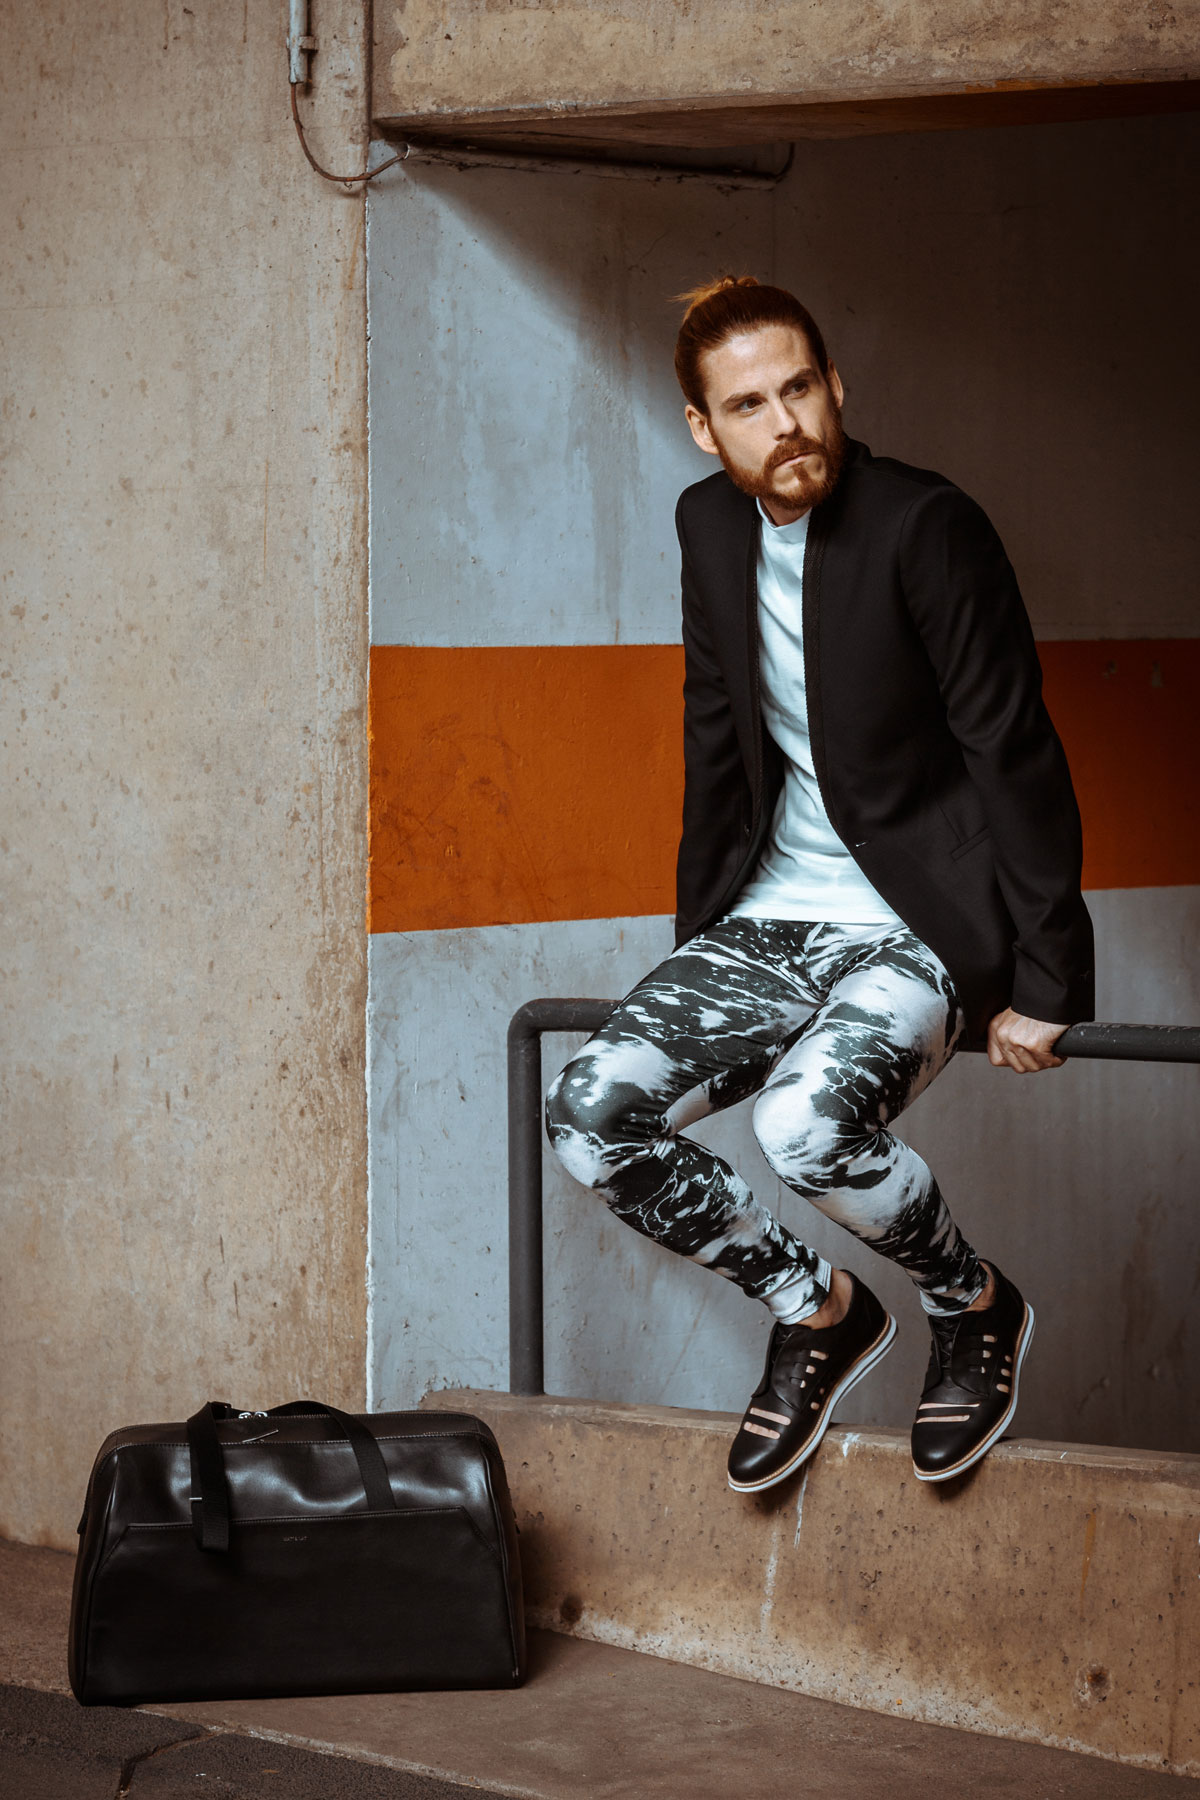 Kapow-Meggings-Malefashion-Style-Sakko-Maennermodeblog-Trend-Model